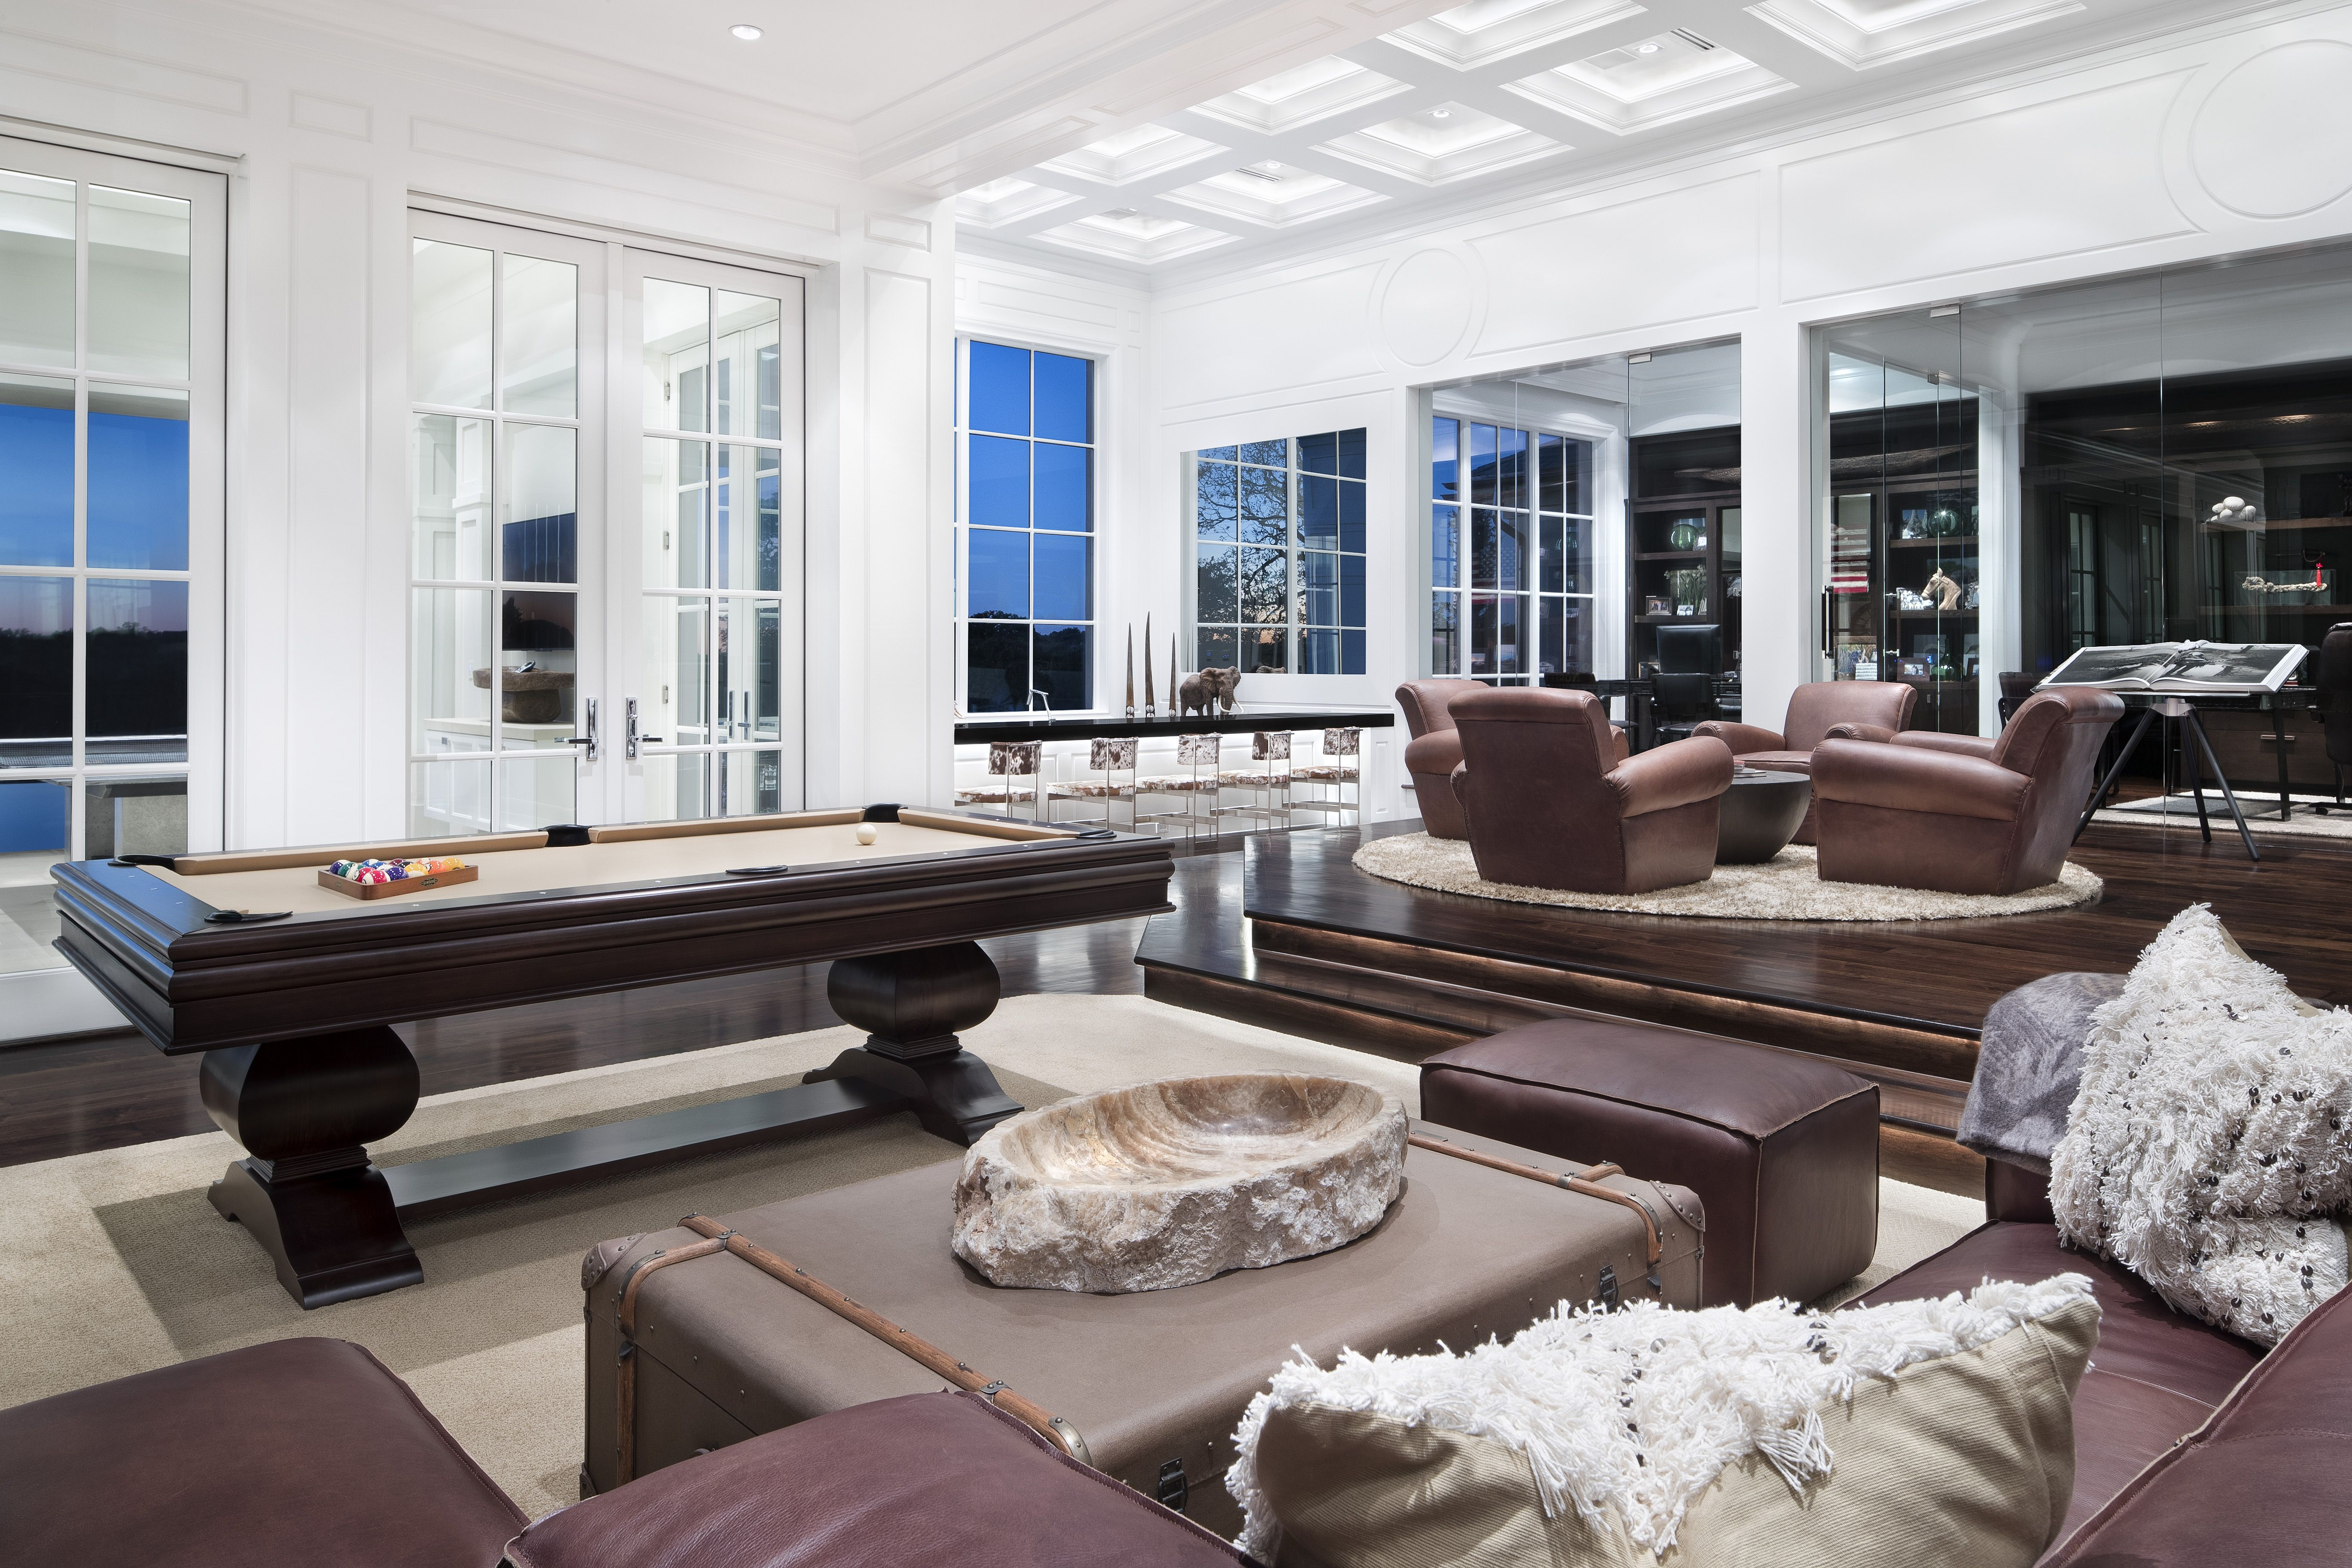 Watch Elegance in Texas at the Southlake Residence by Jauregui Architects video